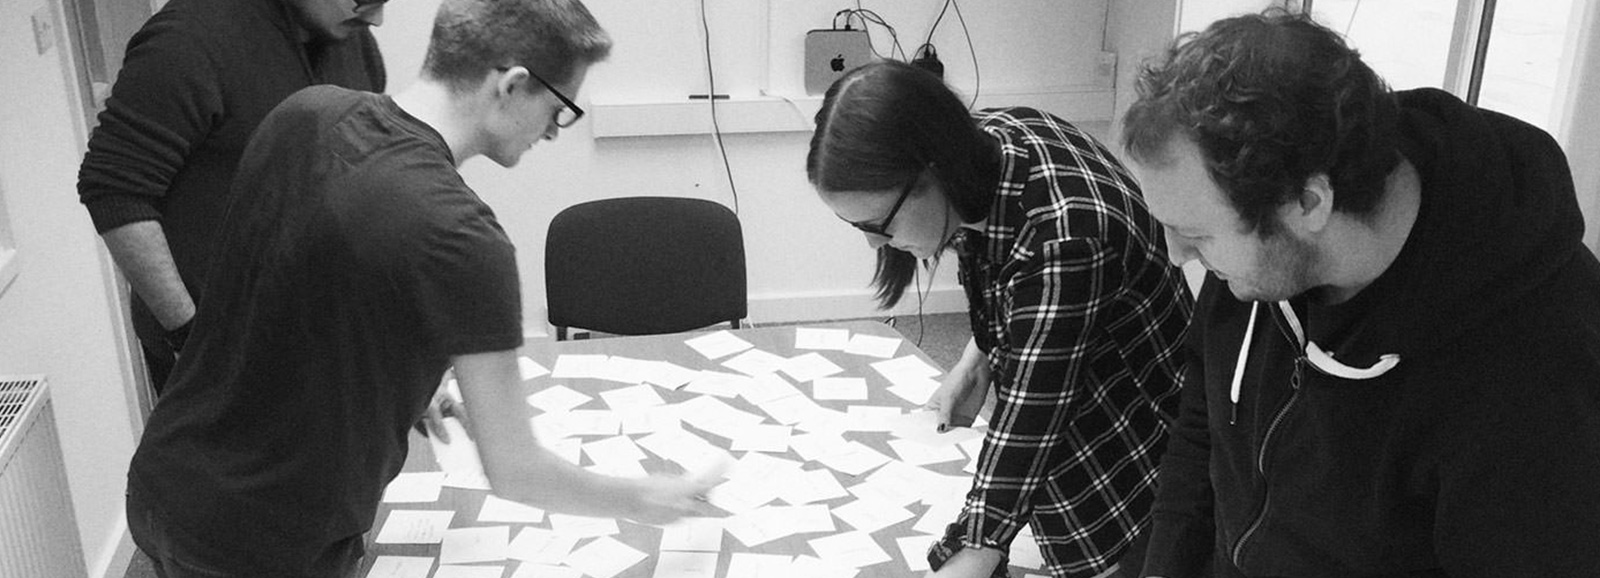 People stood around a table that is filled with notes during a UX design sprint